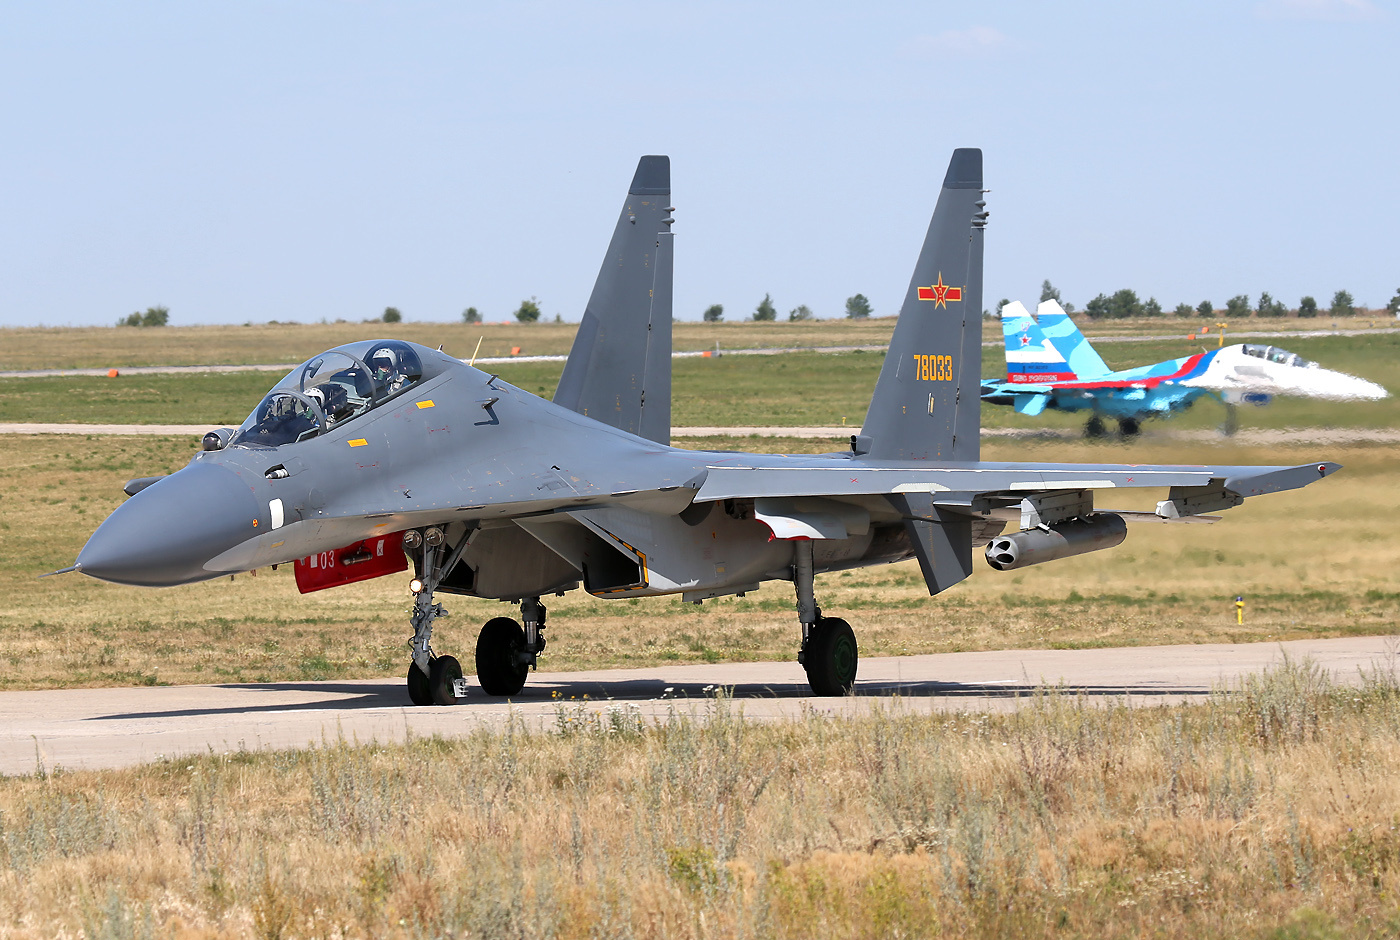 https://upload.wikimedia.org/wikipedia/commons/9/92/PLAAF_Sukhoi_Su-30MKK_at_Lipetsk_Air_Base.jpg